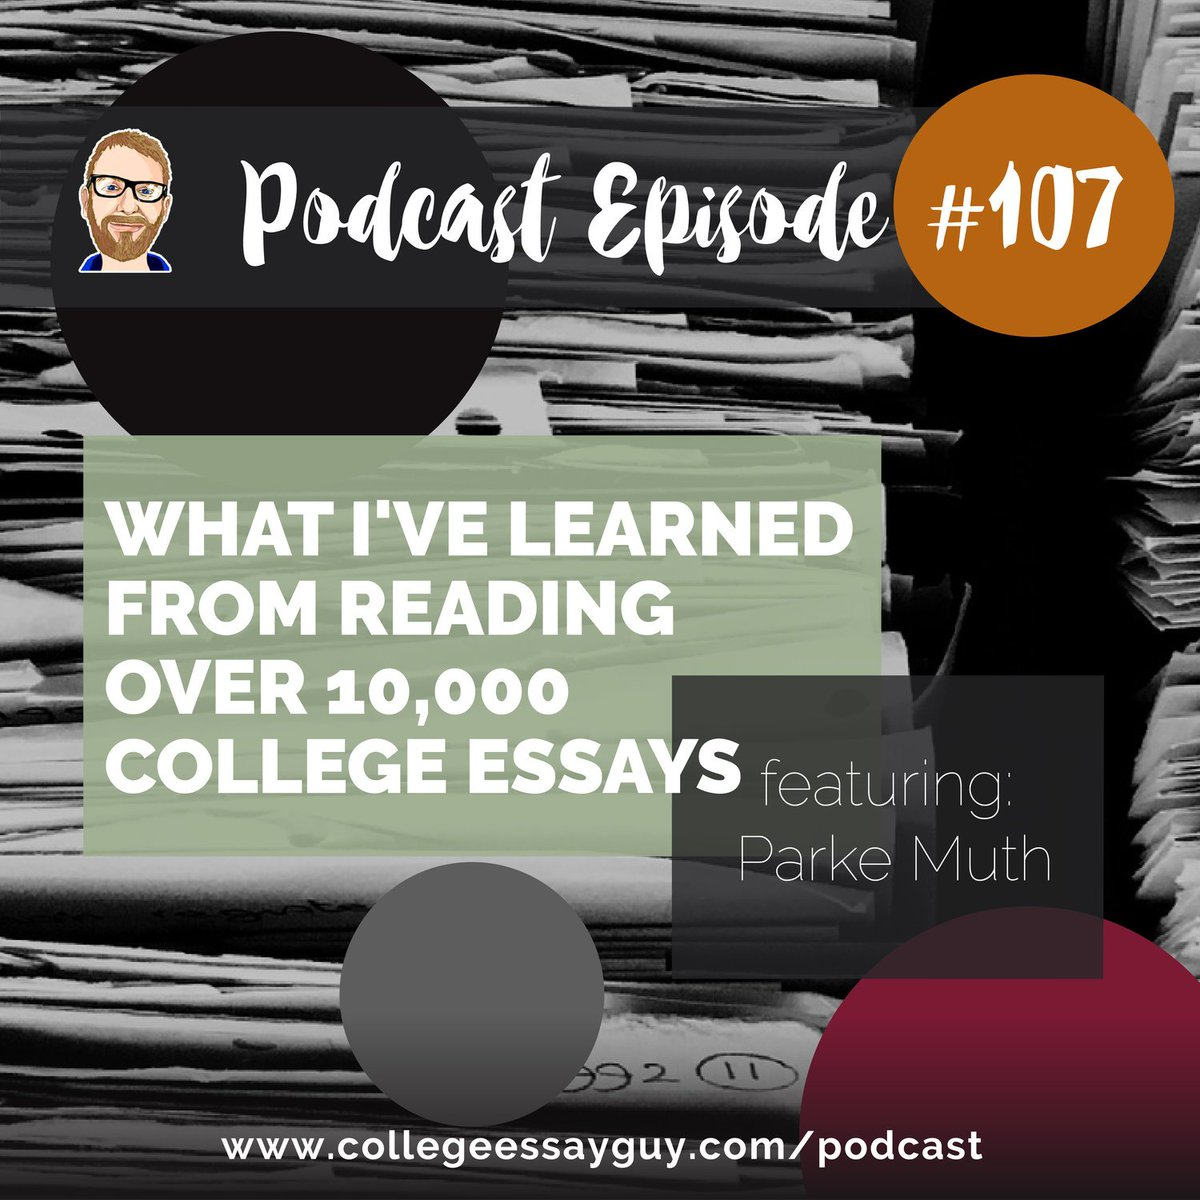 This episode is special because it's an interview with one of my heroes of the college admissions world, @PMuthConsulting. He spent 28 years in the office of Admissions at UVa, and he shares what he's learned from reading over 10,000 college essays. 🎧: goo.gl/hxPJB6